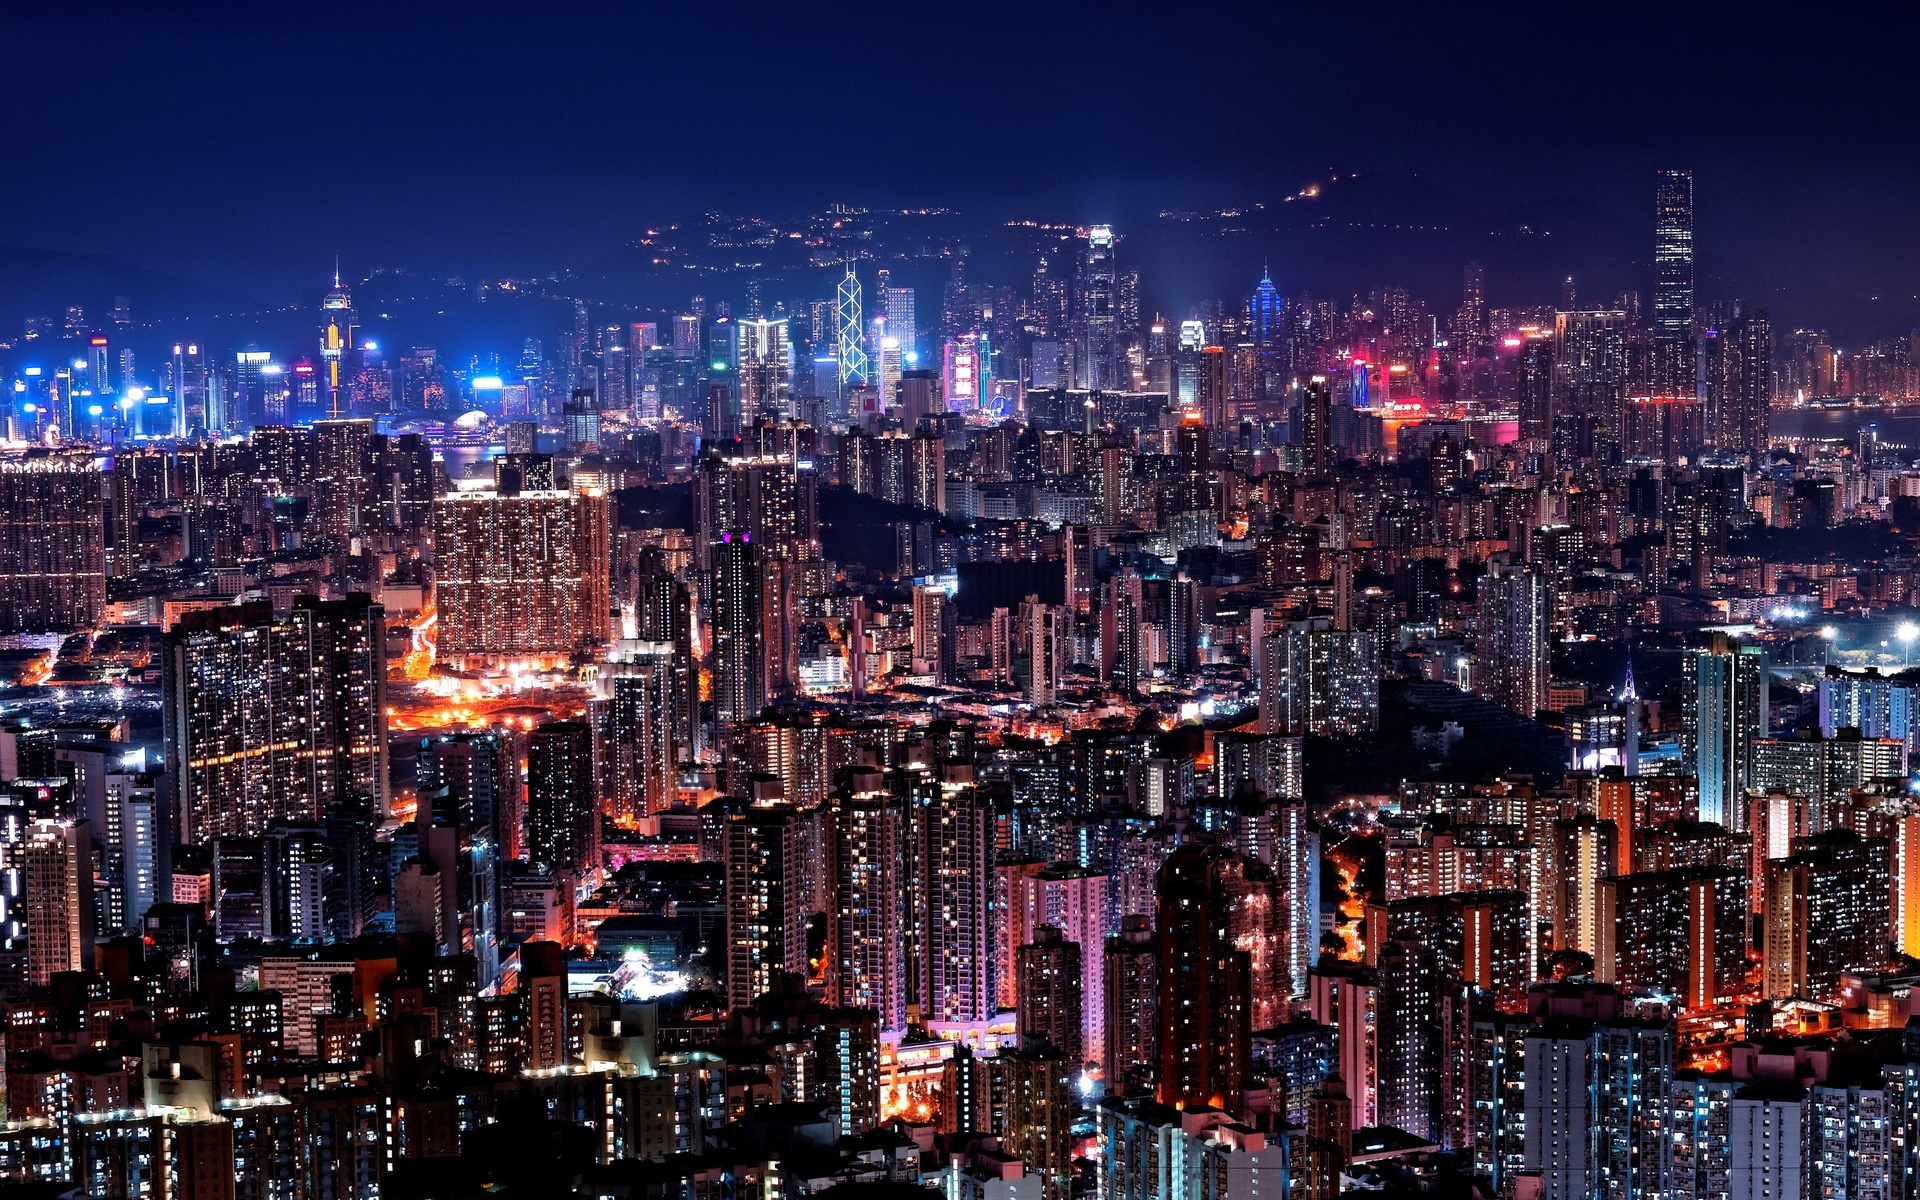 city, lights, china, colorful, night, glow, buildings, architecture, skyscrapers, asia, cityscape, night city, metropolis